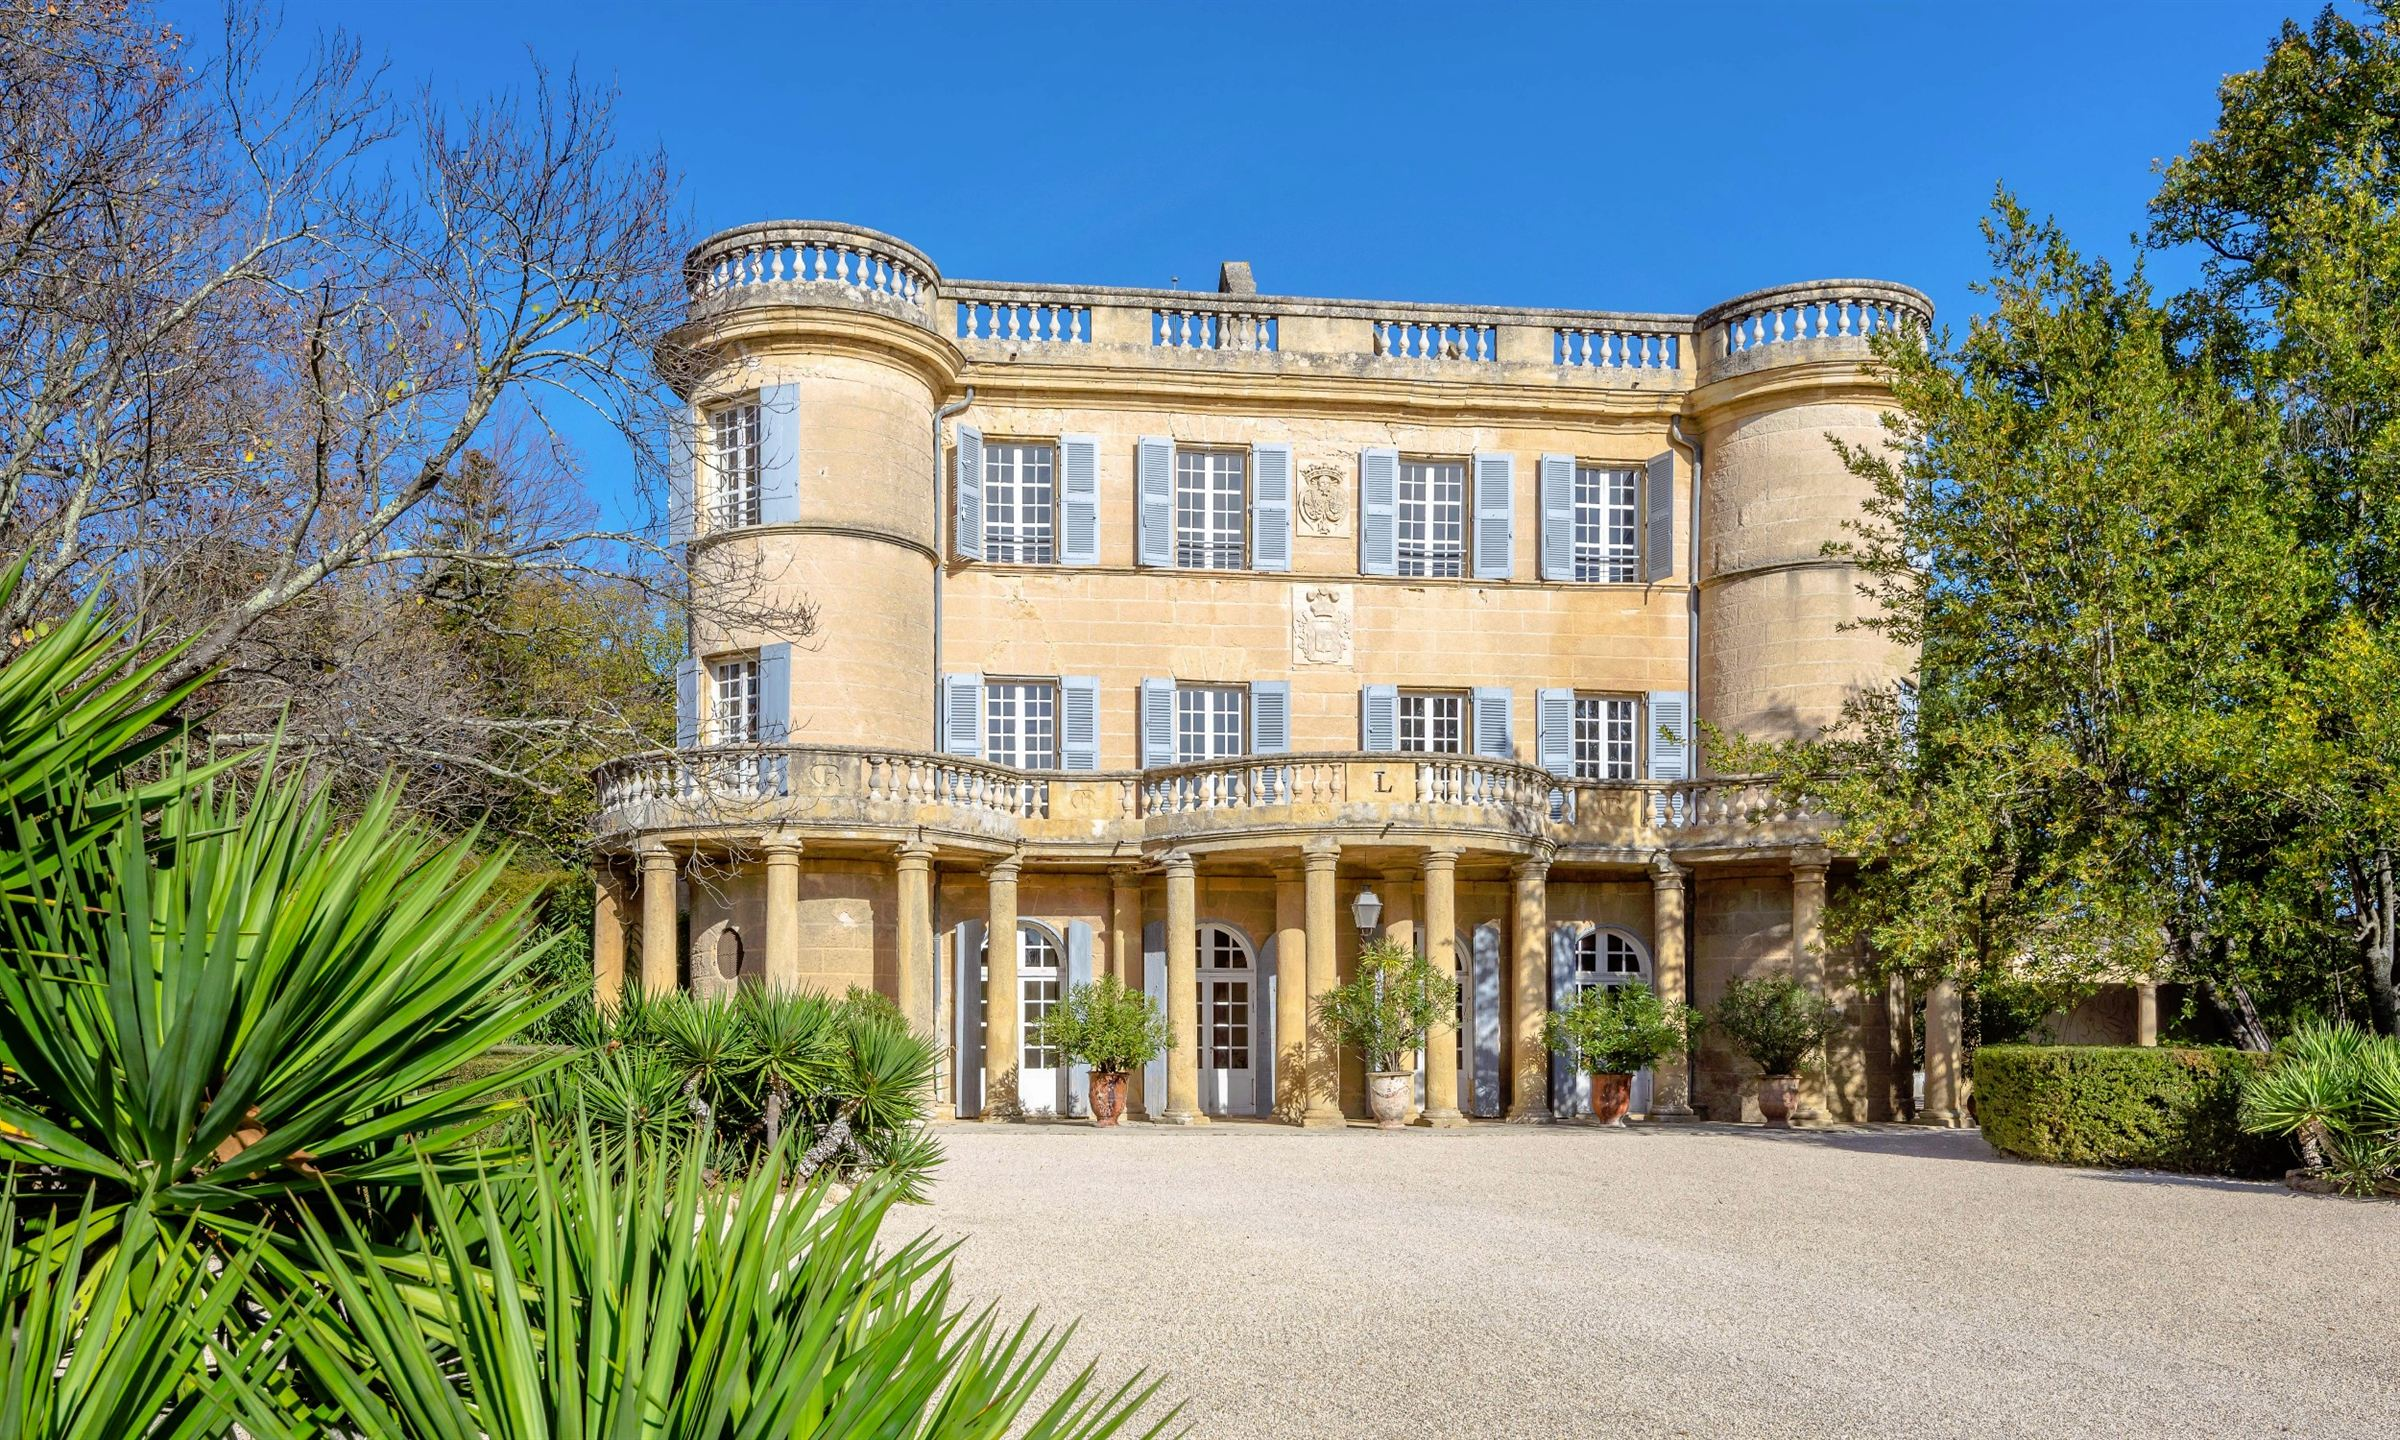 Single Family Home for Sale at EXCEPTIONAL HISTORIC CASTLE WITH PICASSO FRESCOS Uzes, Languedoc-Roussillon, 30700 France